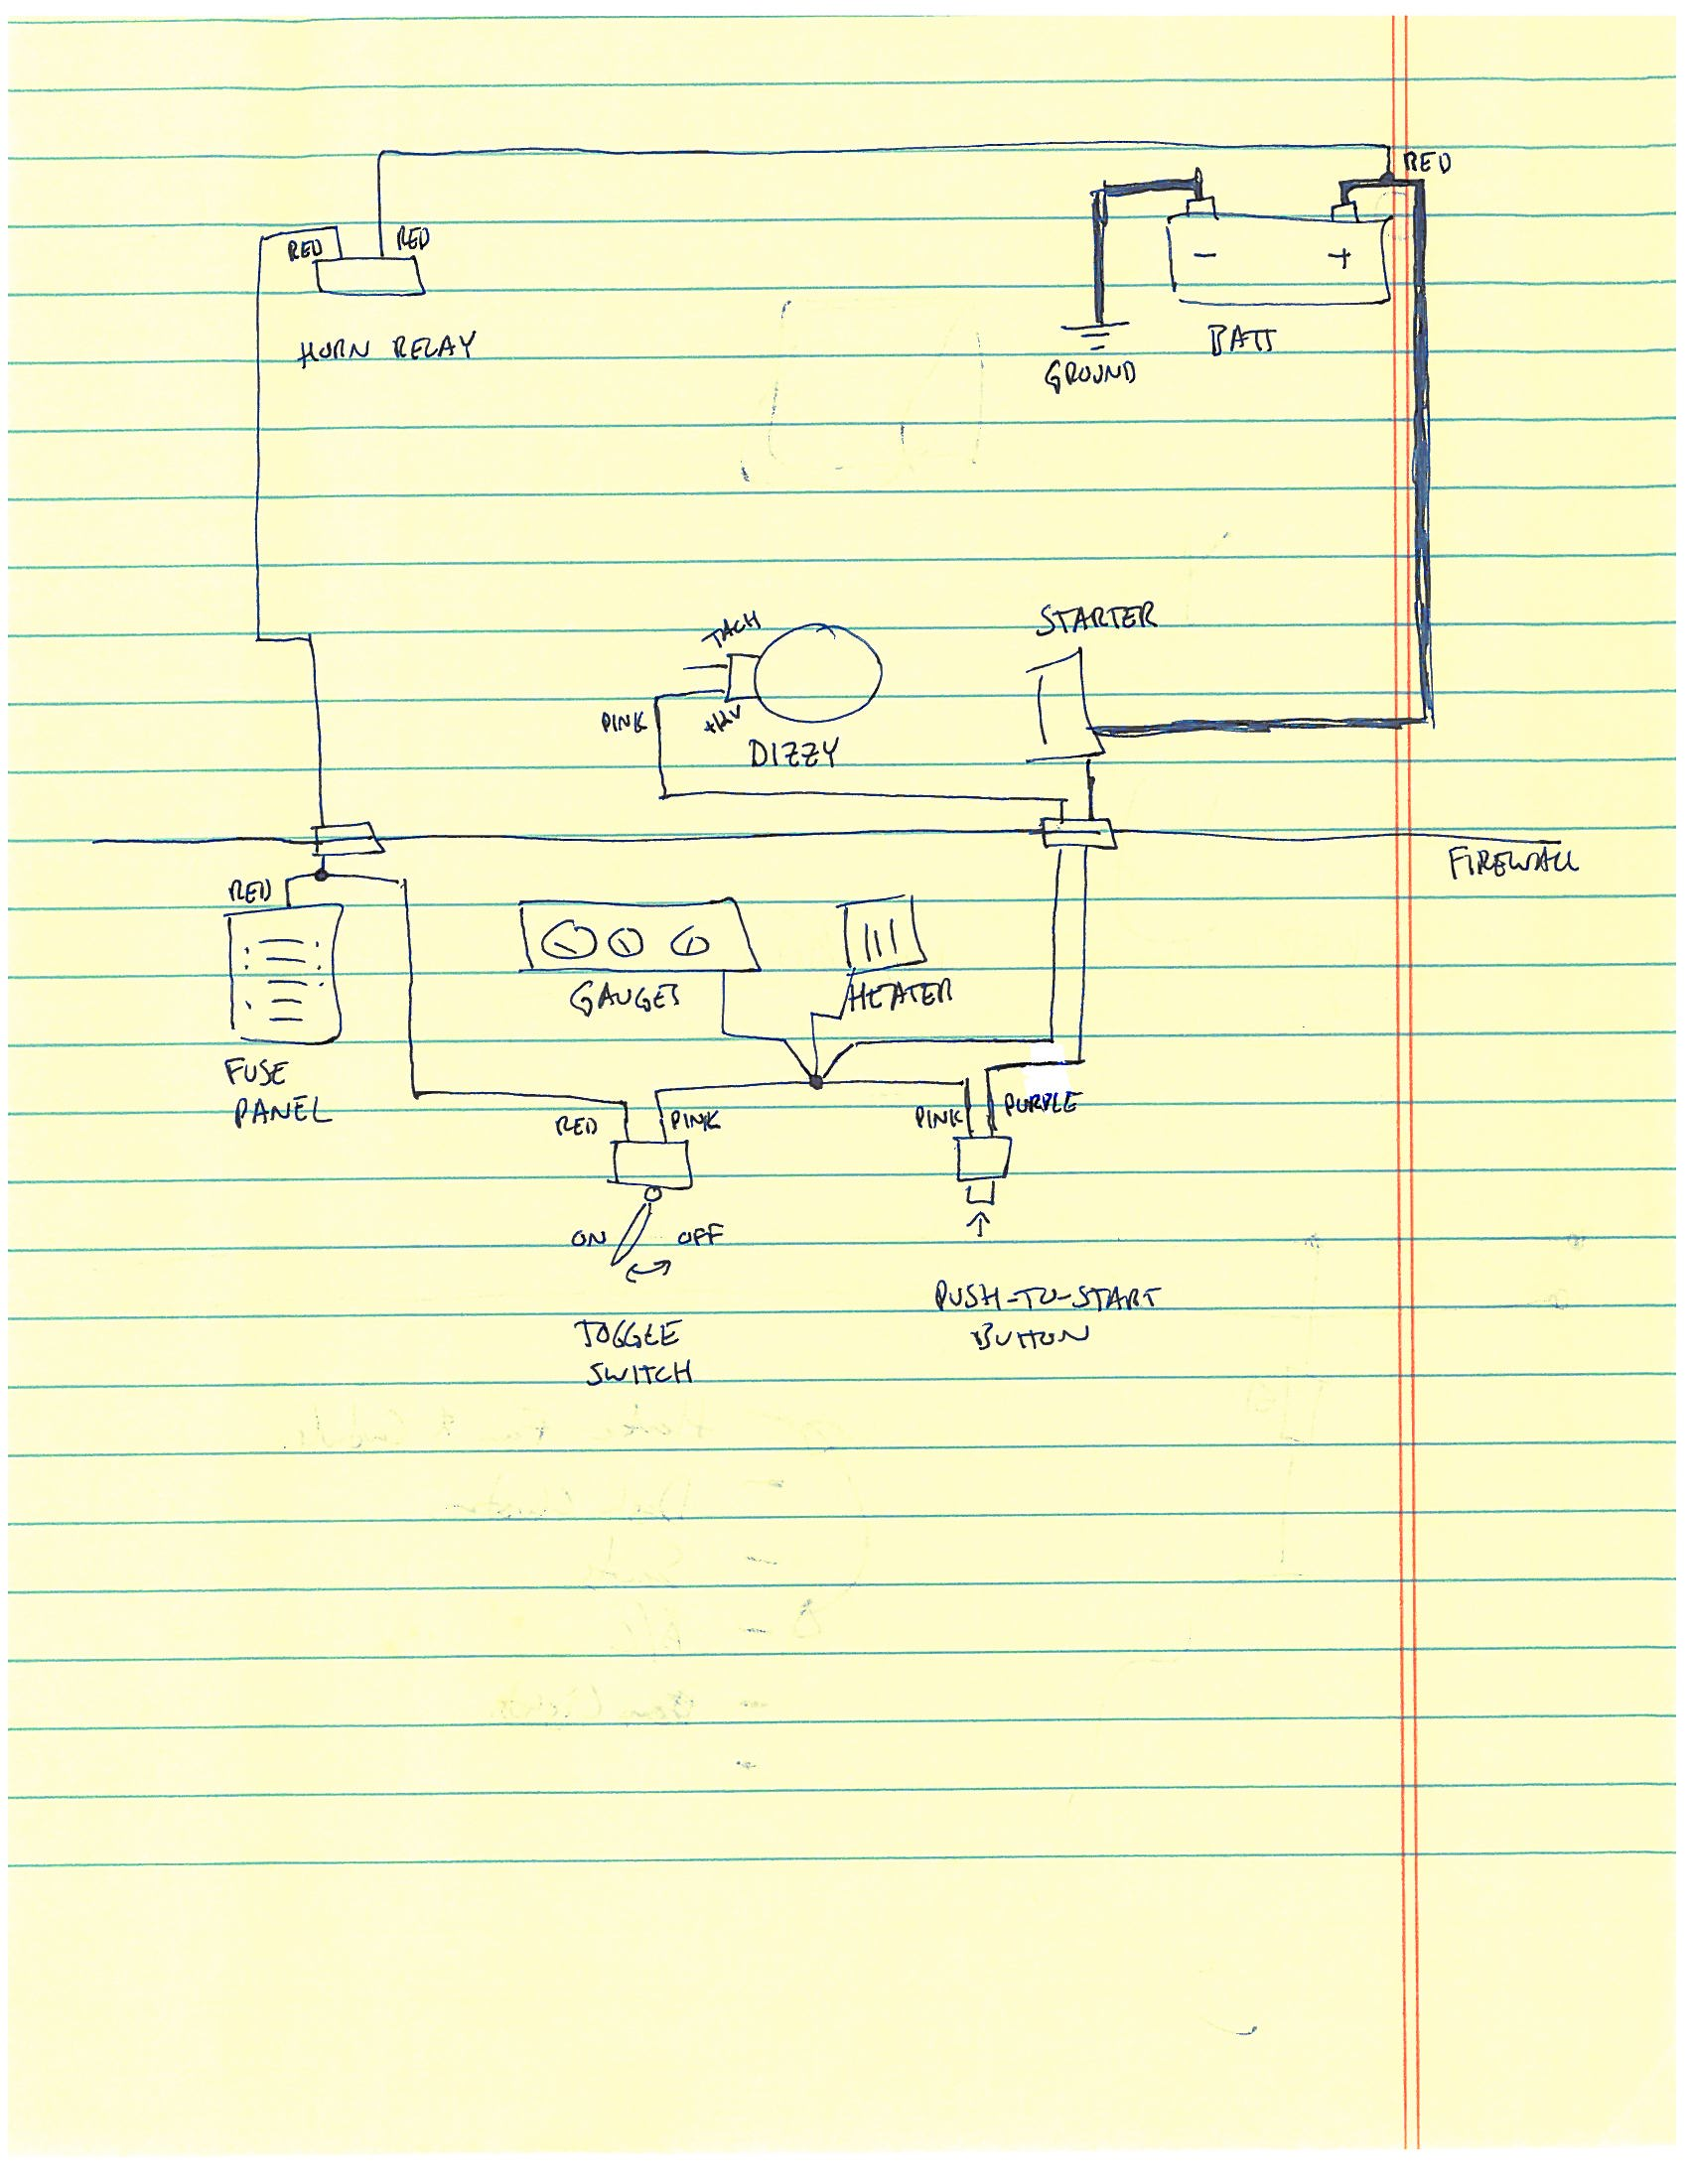 1966 Chevy C20 Wiring Diagram Data Windshield Wiper Switch Truck Online Schematiceignicionrealy